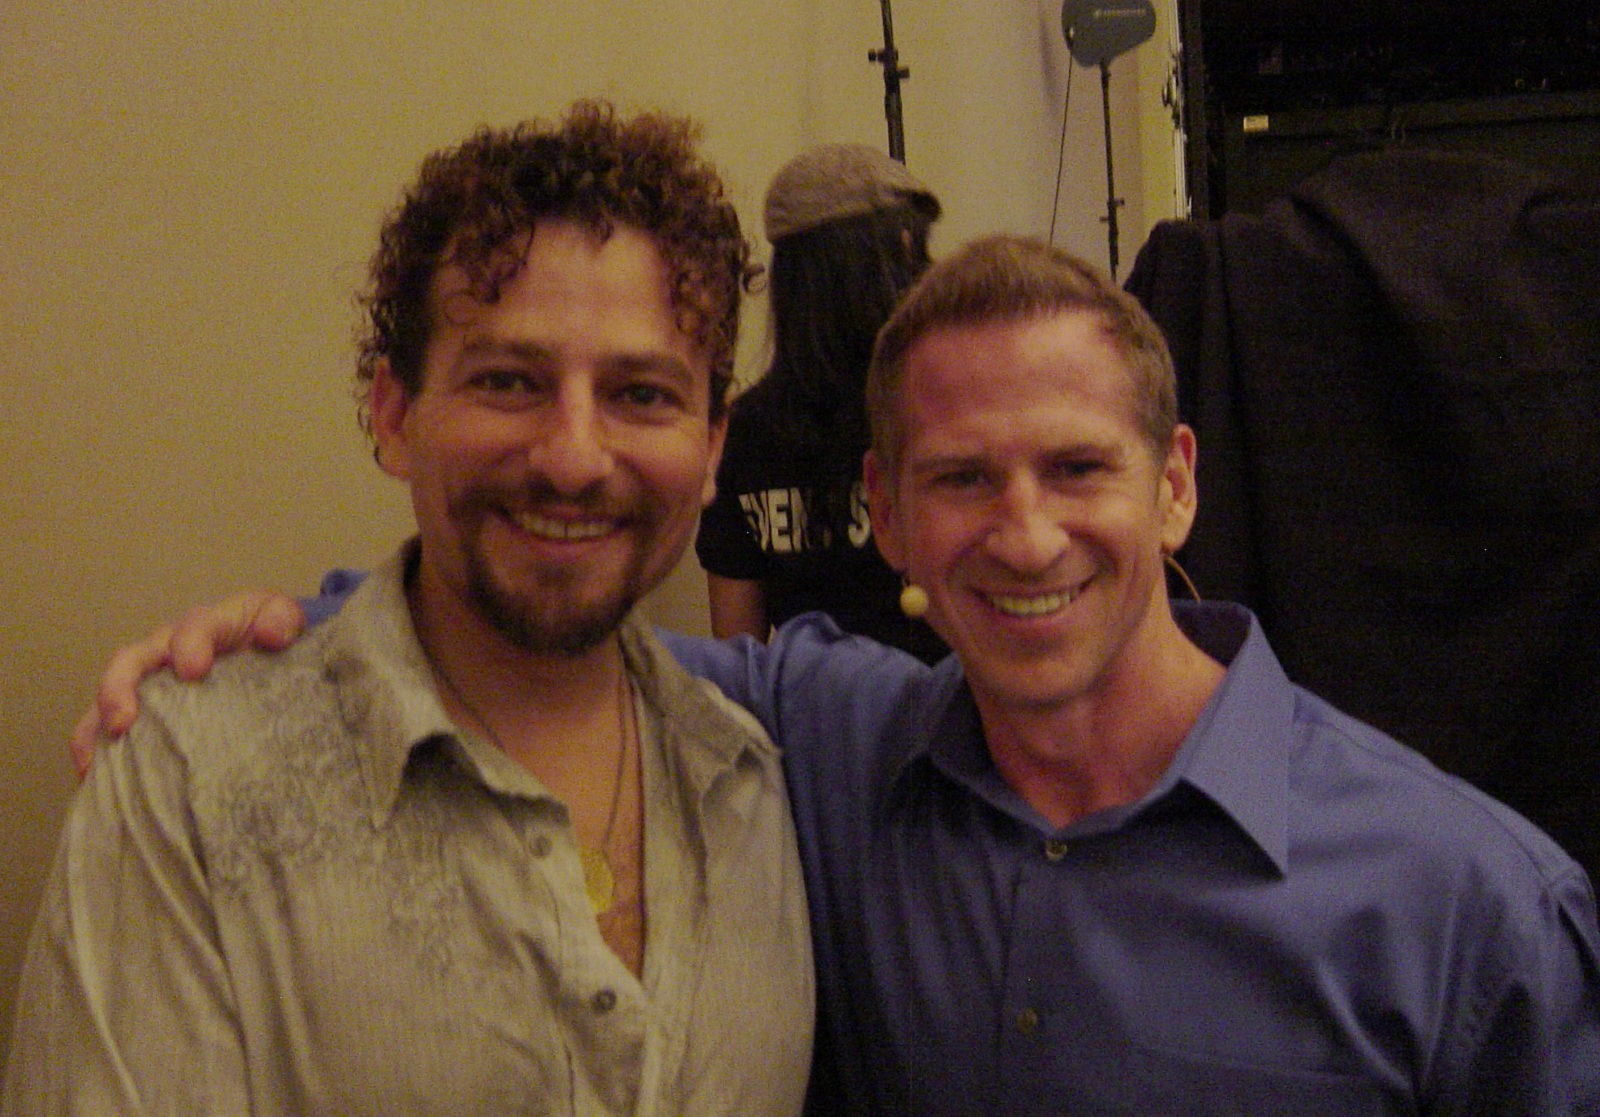 David-Wolfe-and-Tom-Terwilliger